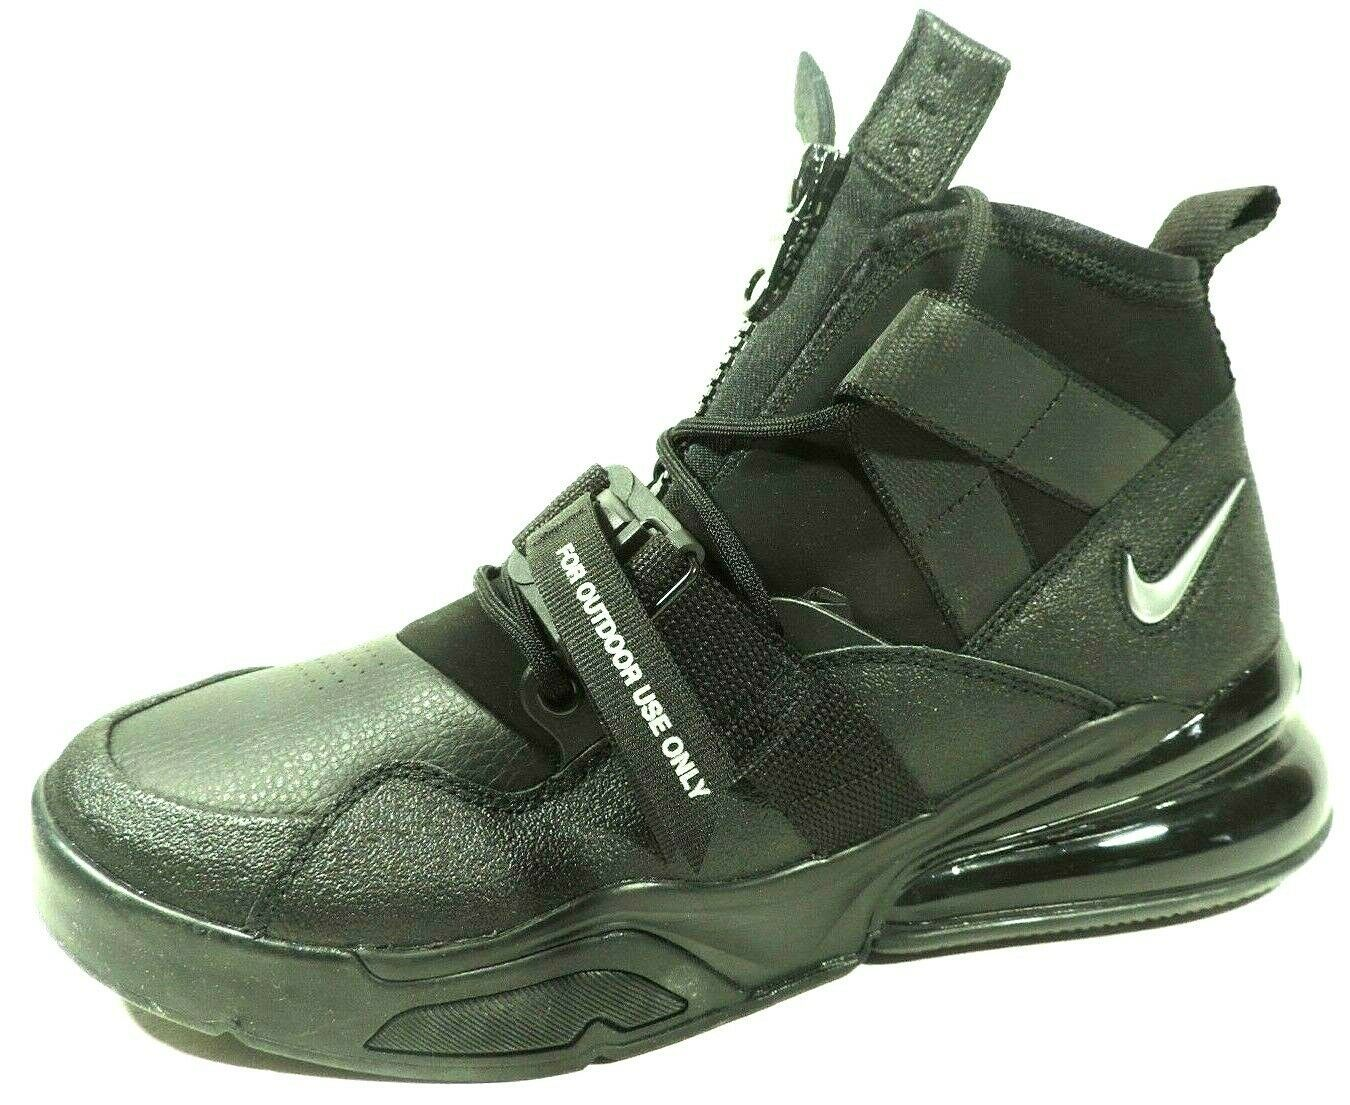 Nike Air Force Max 270 Utility Mens Shoes Athletic AQ0572 002/ 400 Black Lth